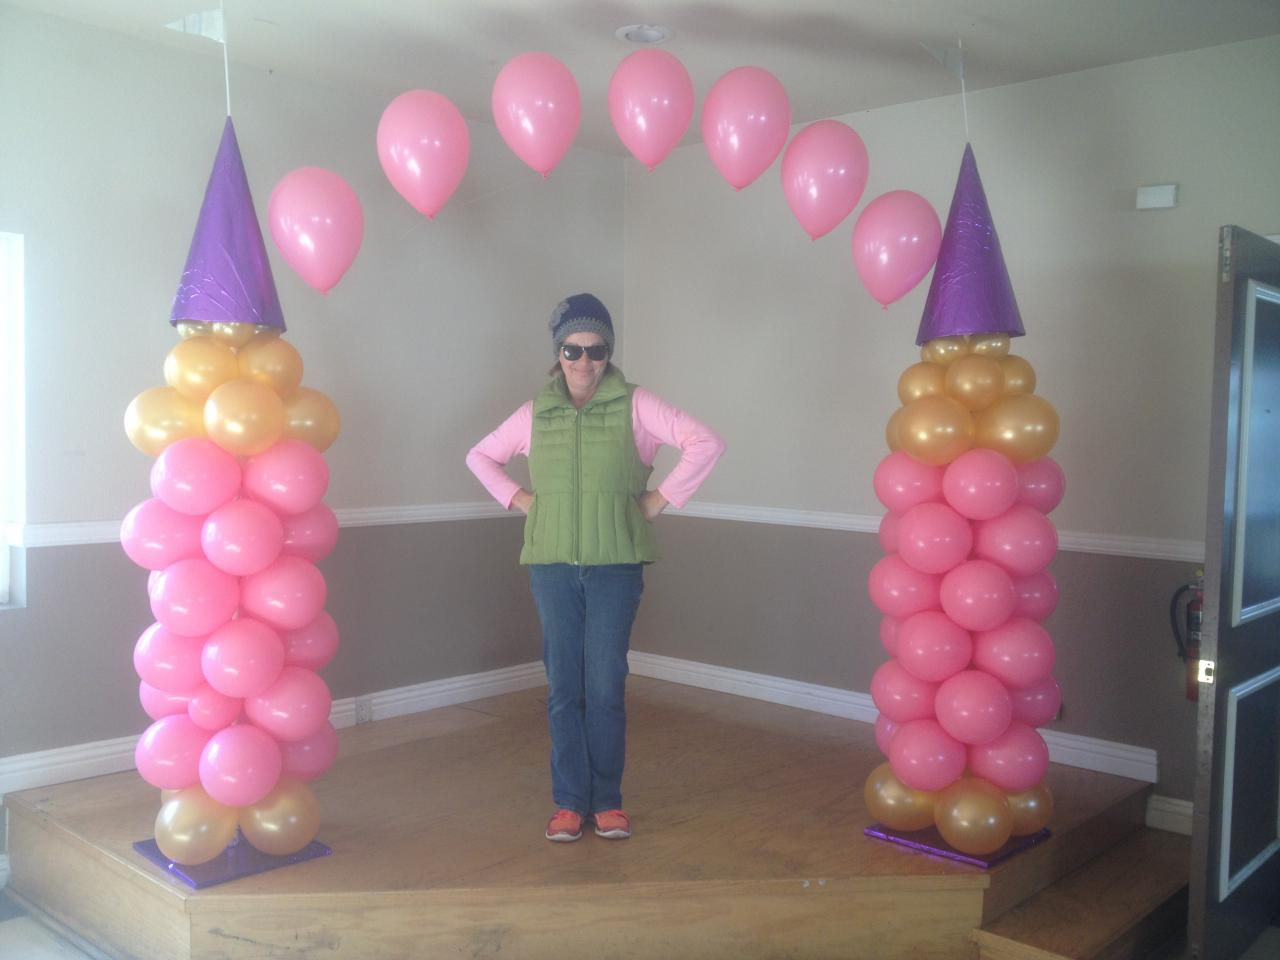 Balloon Arches Can Frame A Stage,or Highlight An Entrance To An Event.They  Add Elegance And Color To Any Celebration,and Make Events Memorable.